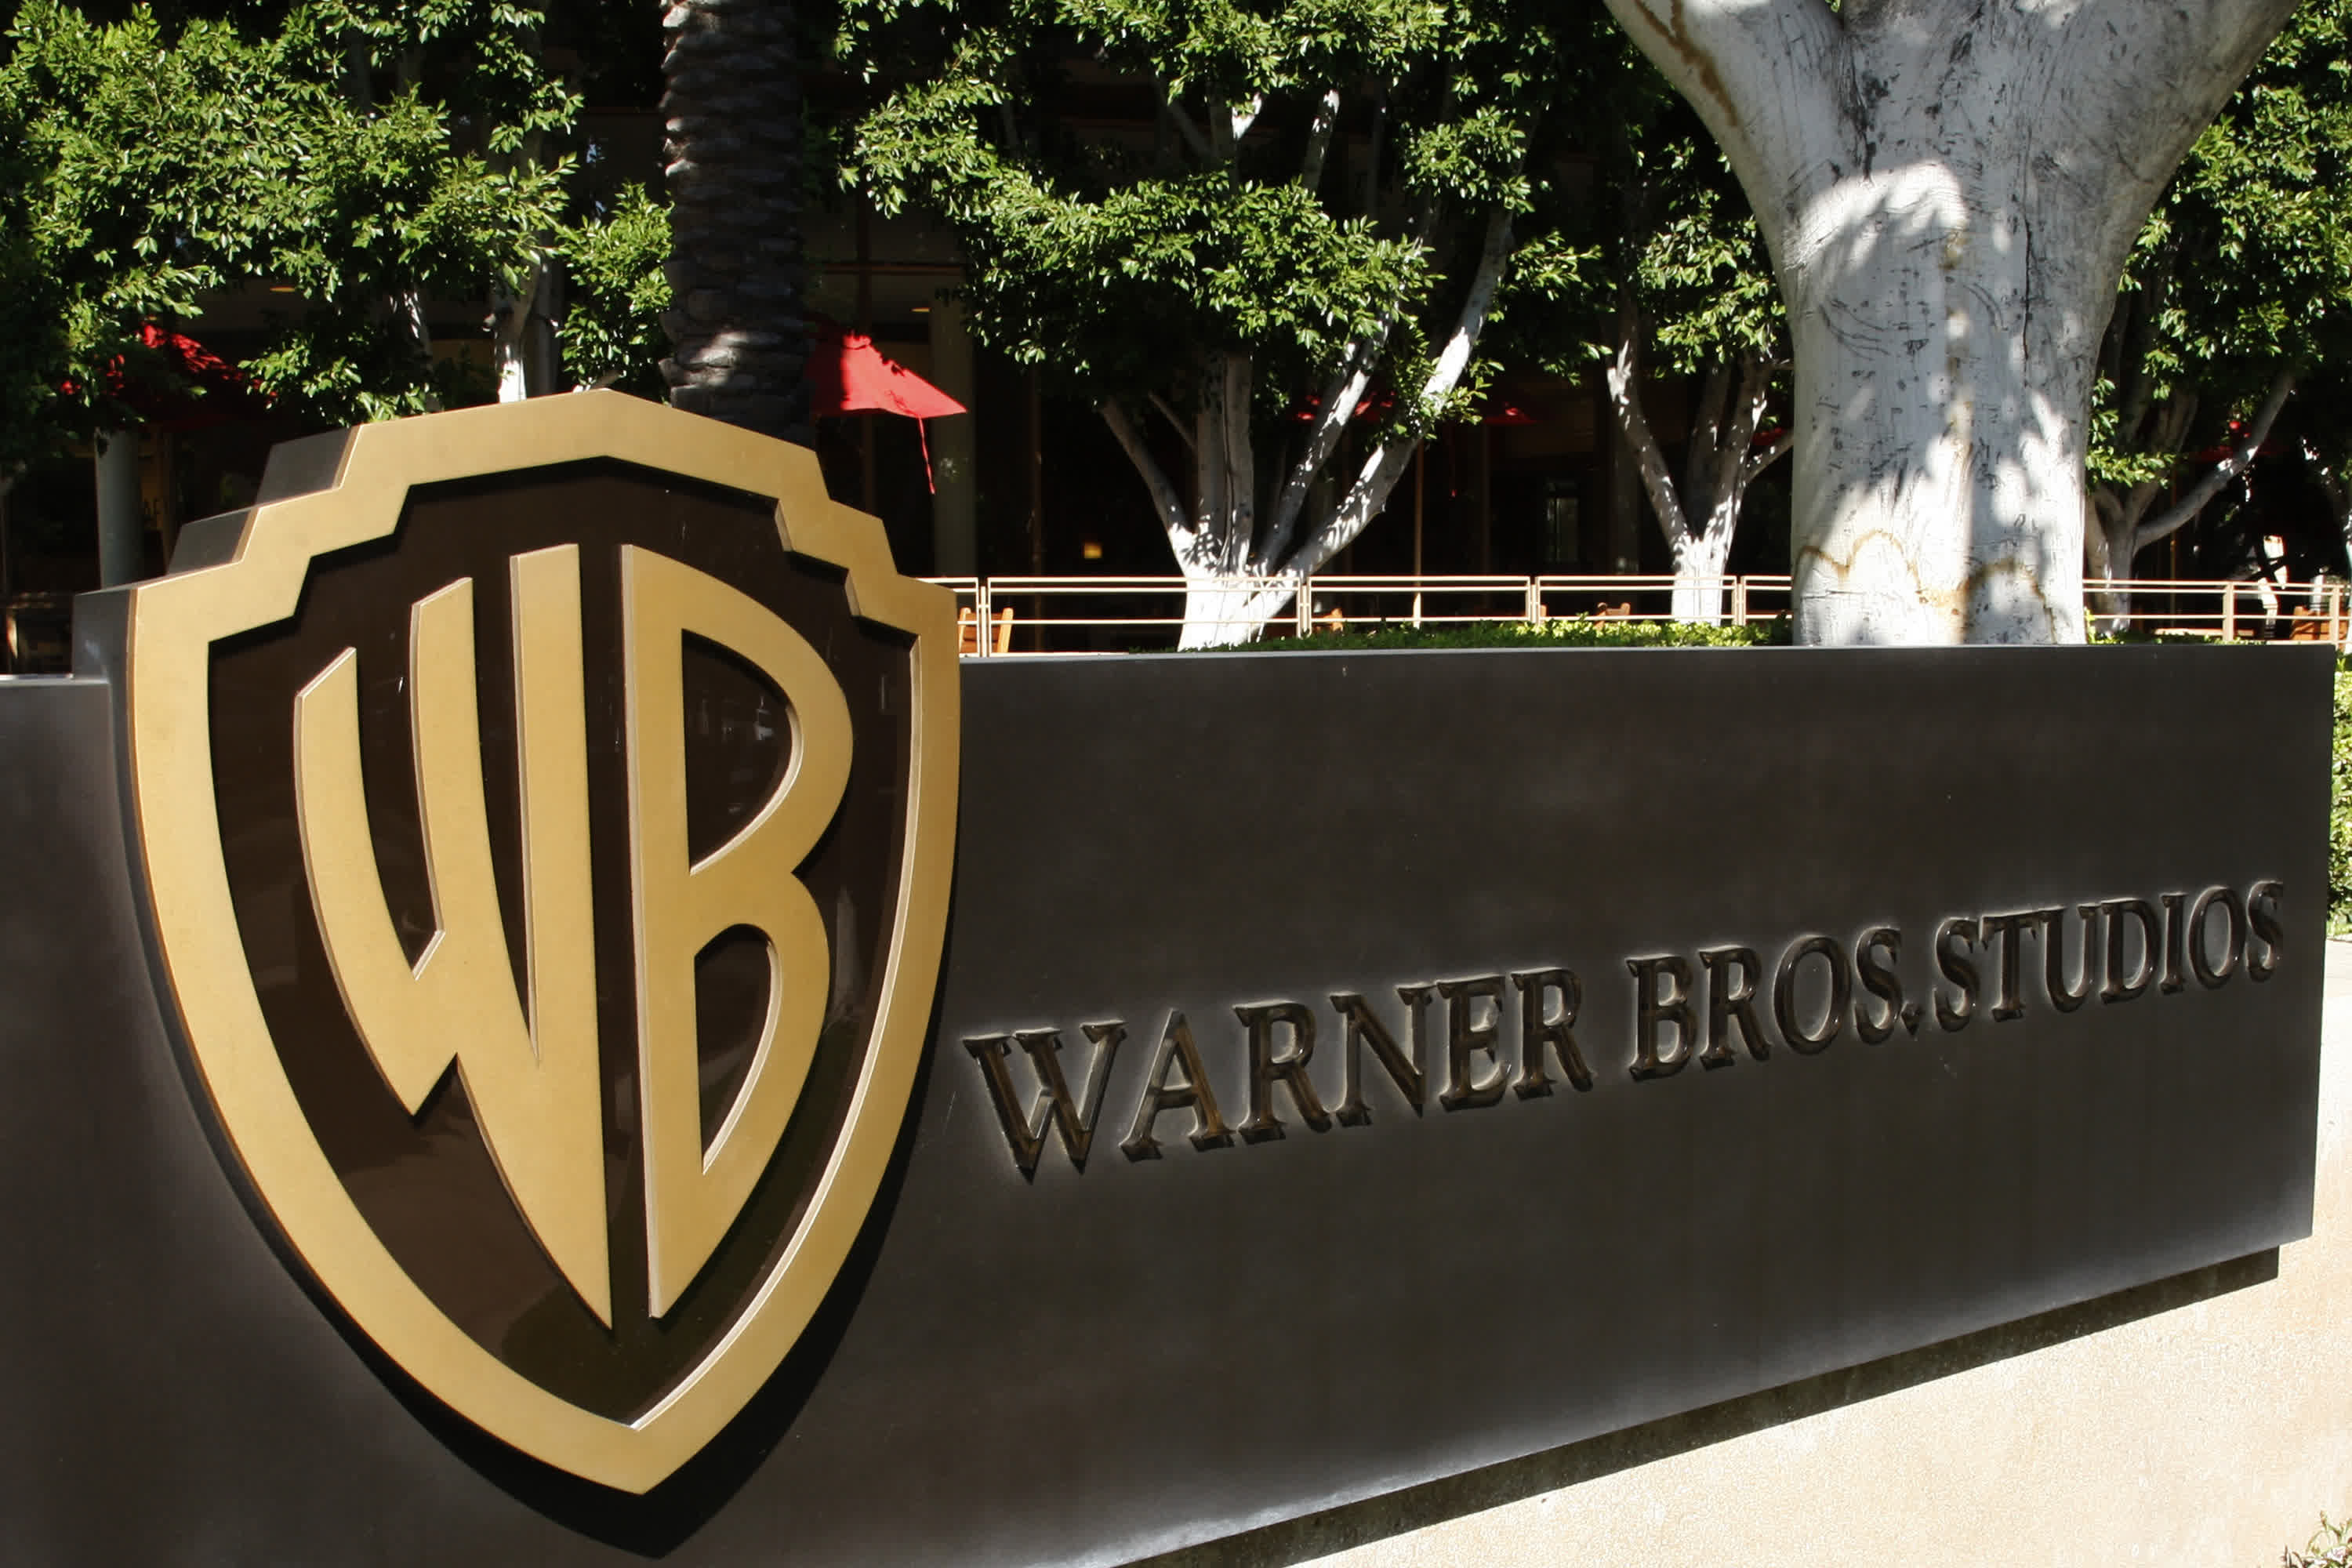 Warner Bros' 2021 film releases will stream through HBO Max on day one